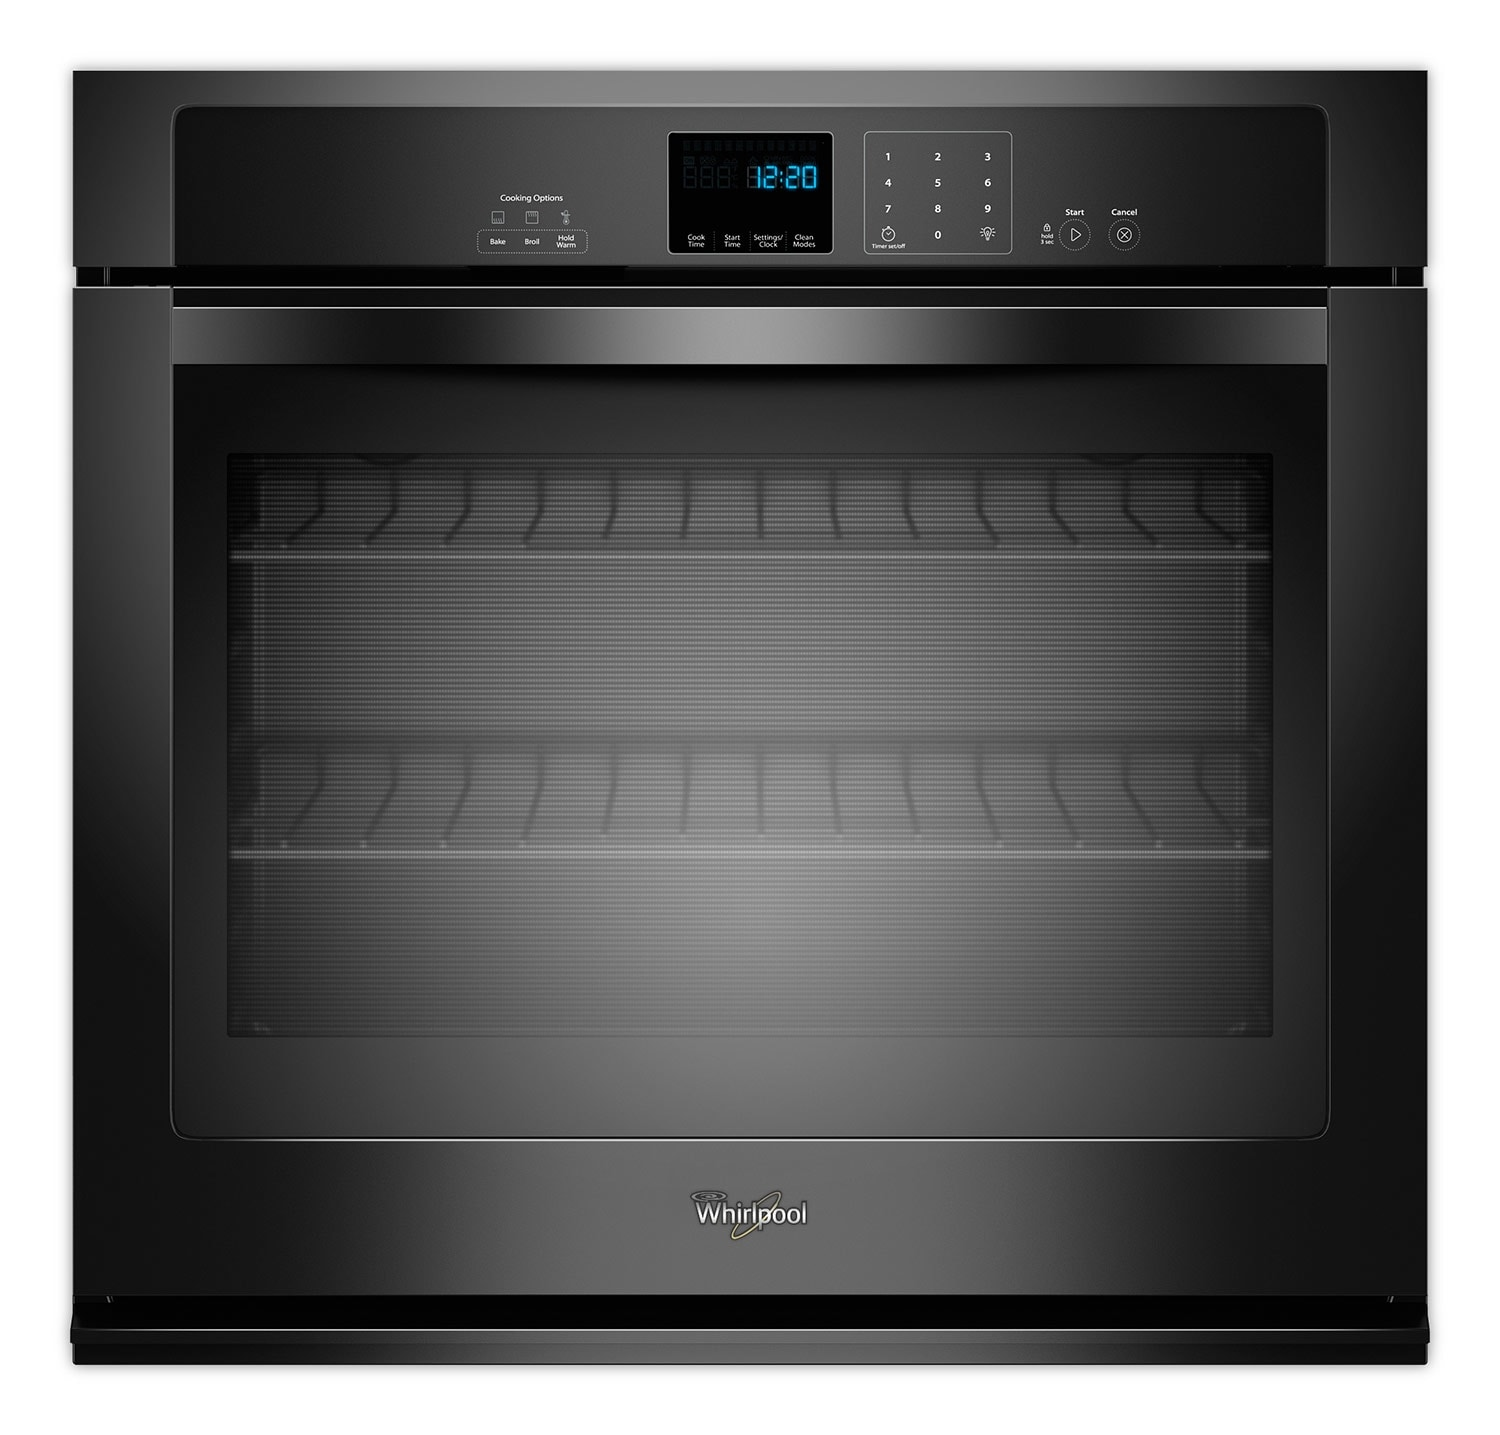 Cooking Products - Whirlpool Black Wall Oven (5.0 Cu. Ft.) - WOS51EC0AB